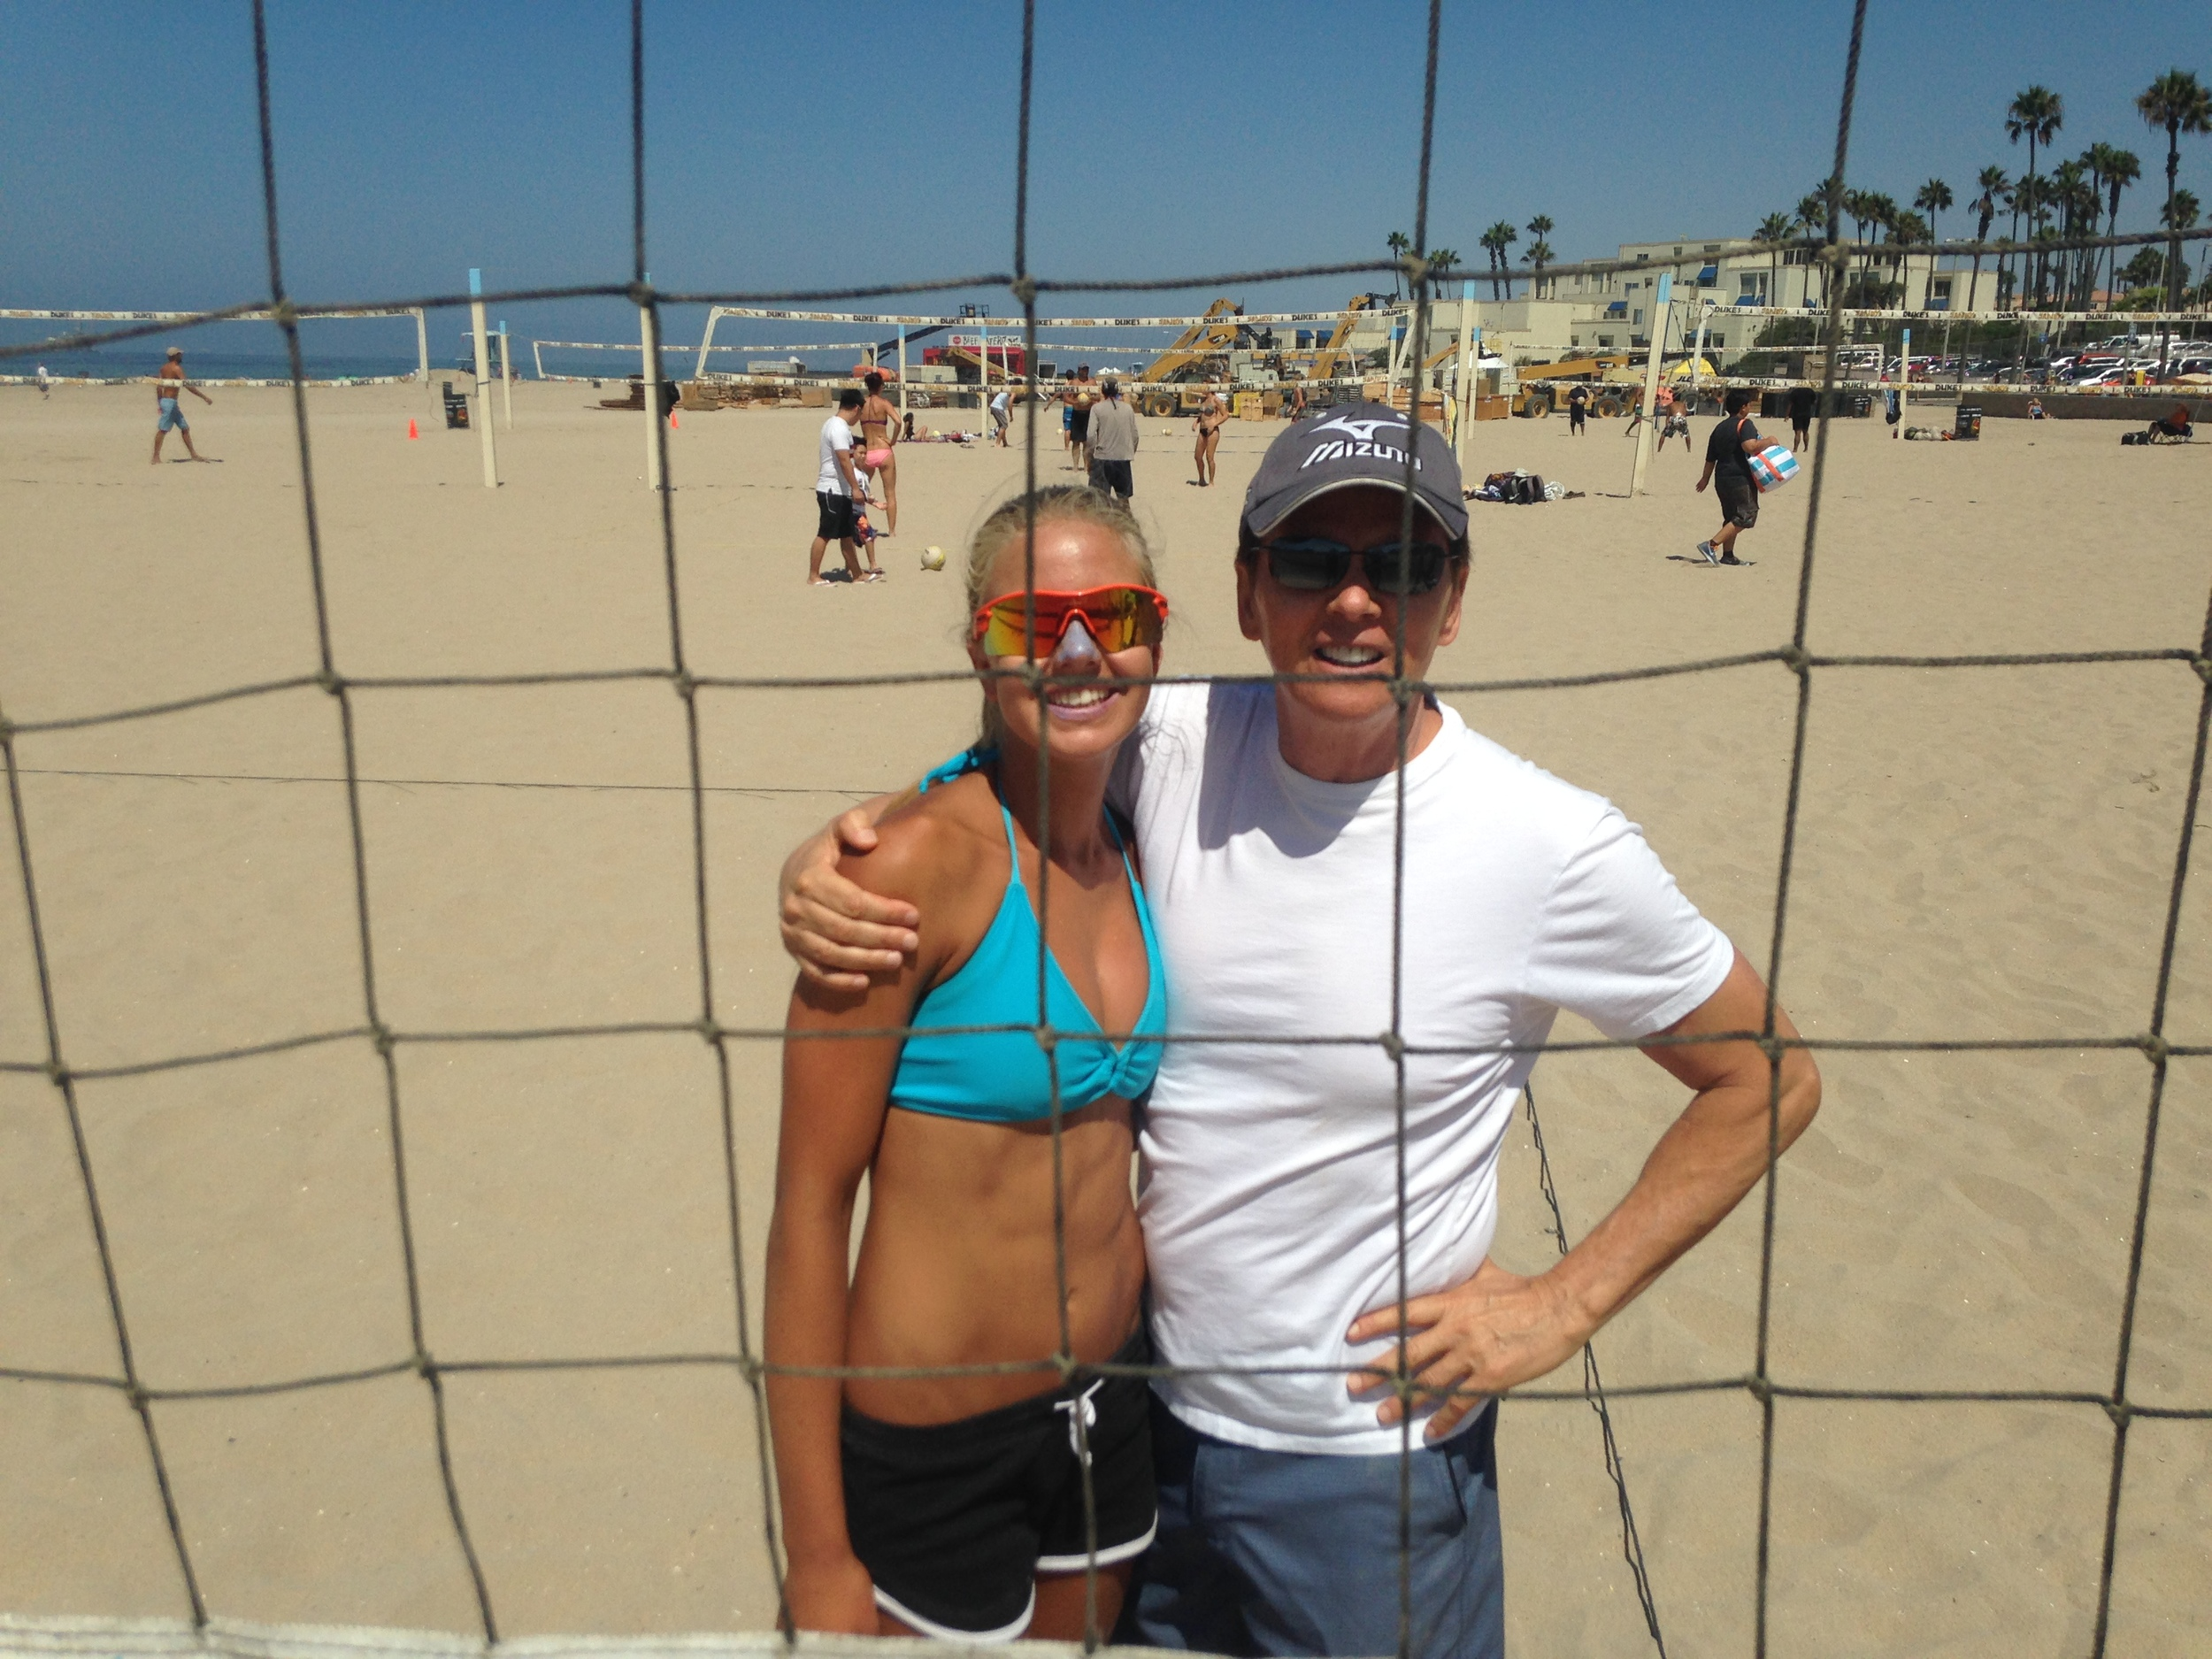 Samantha Thomas has been offered a spot by coach Brian Gimmillaro(right) on the CSULB women's beach volleyball team for 2015. Congrats Sammee and good luck.